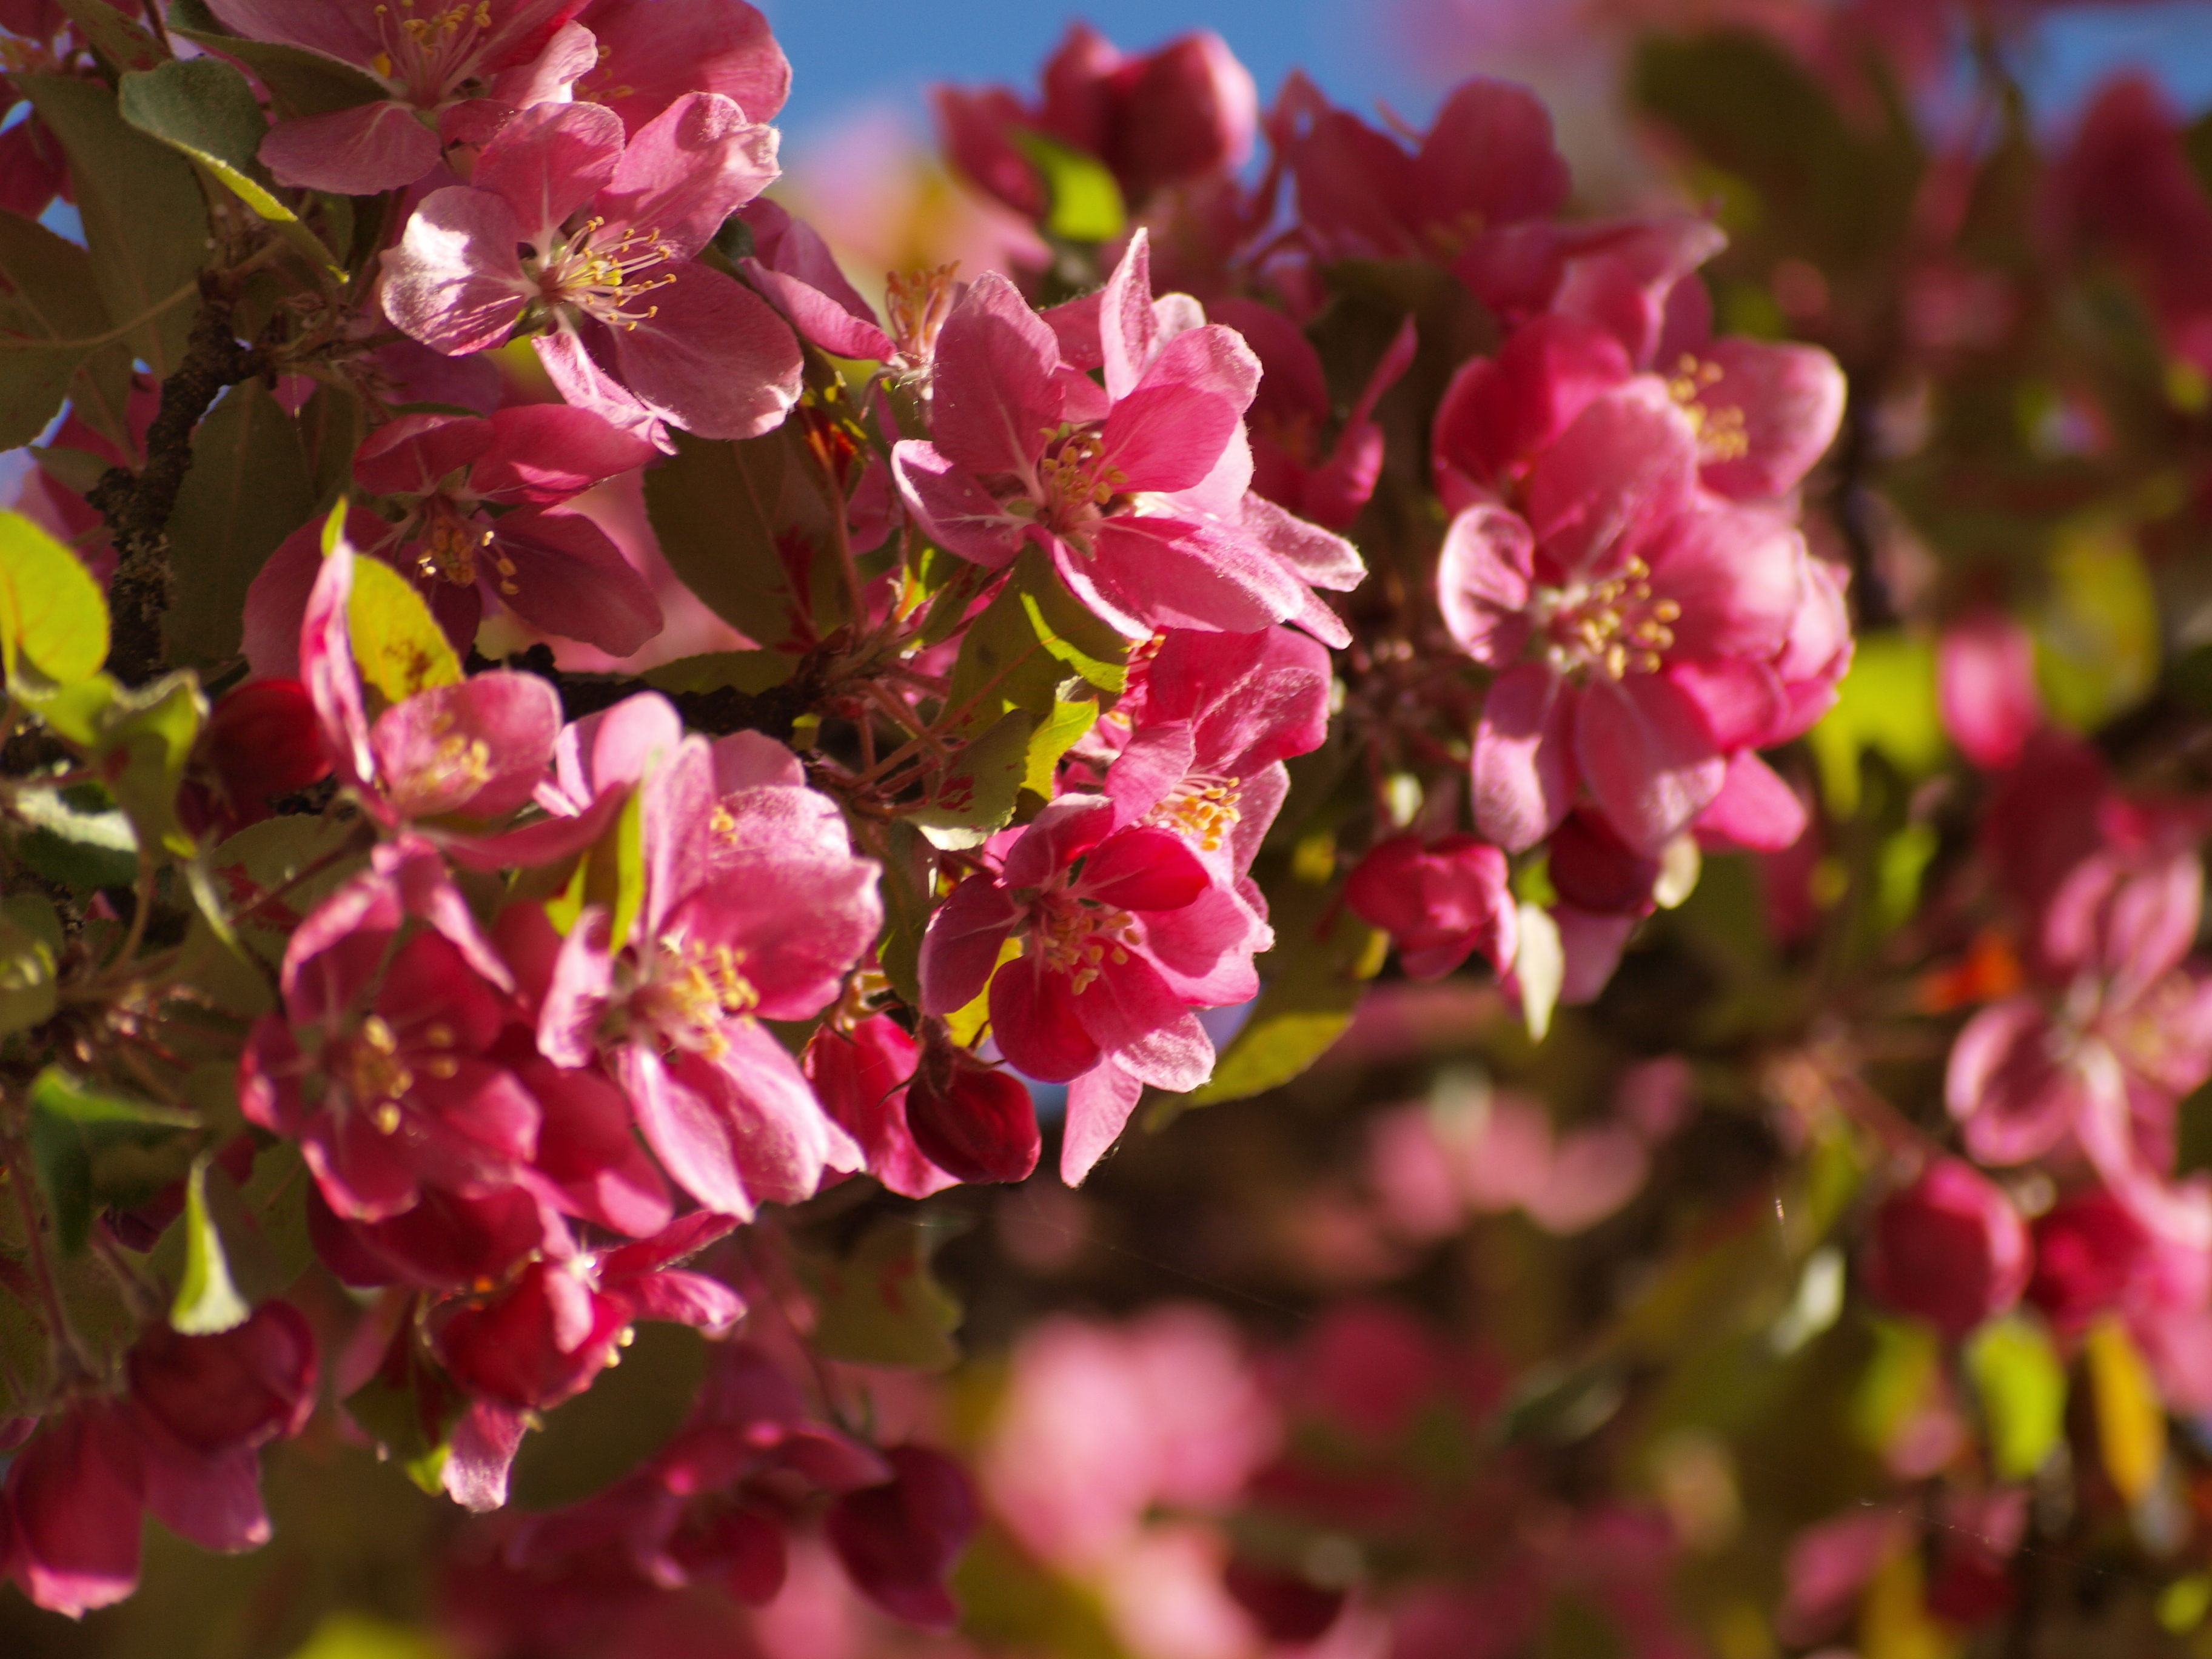 Cherry tree flowers, summer, sunny, tree, red, HQ Photo